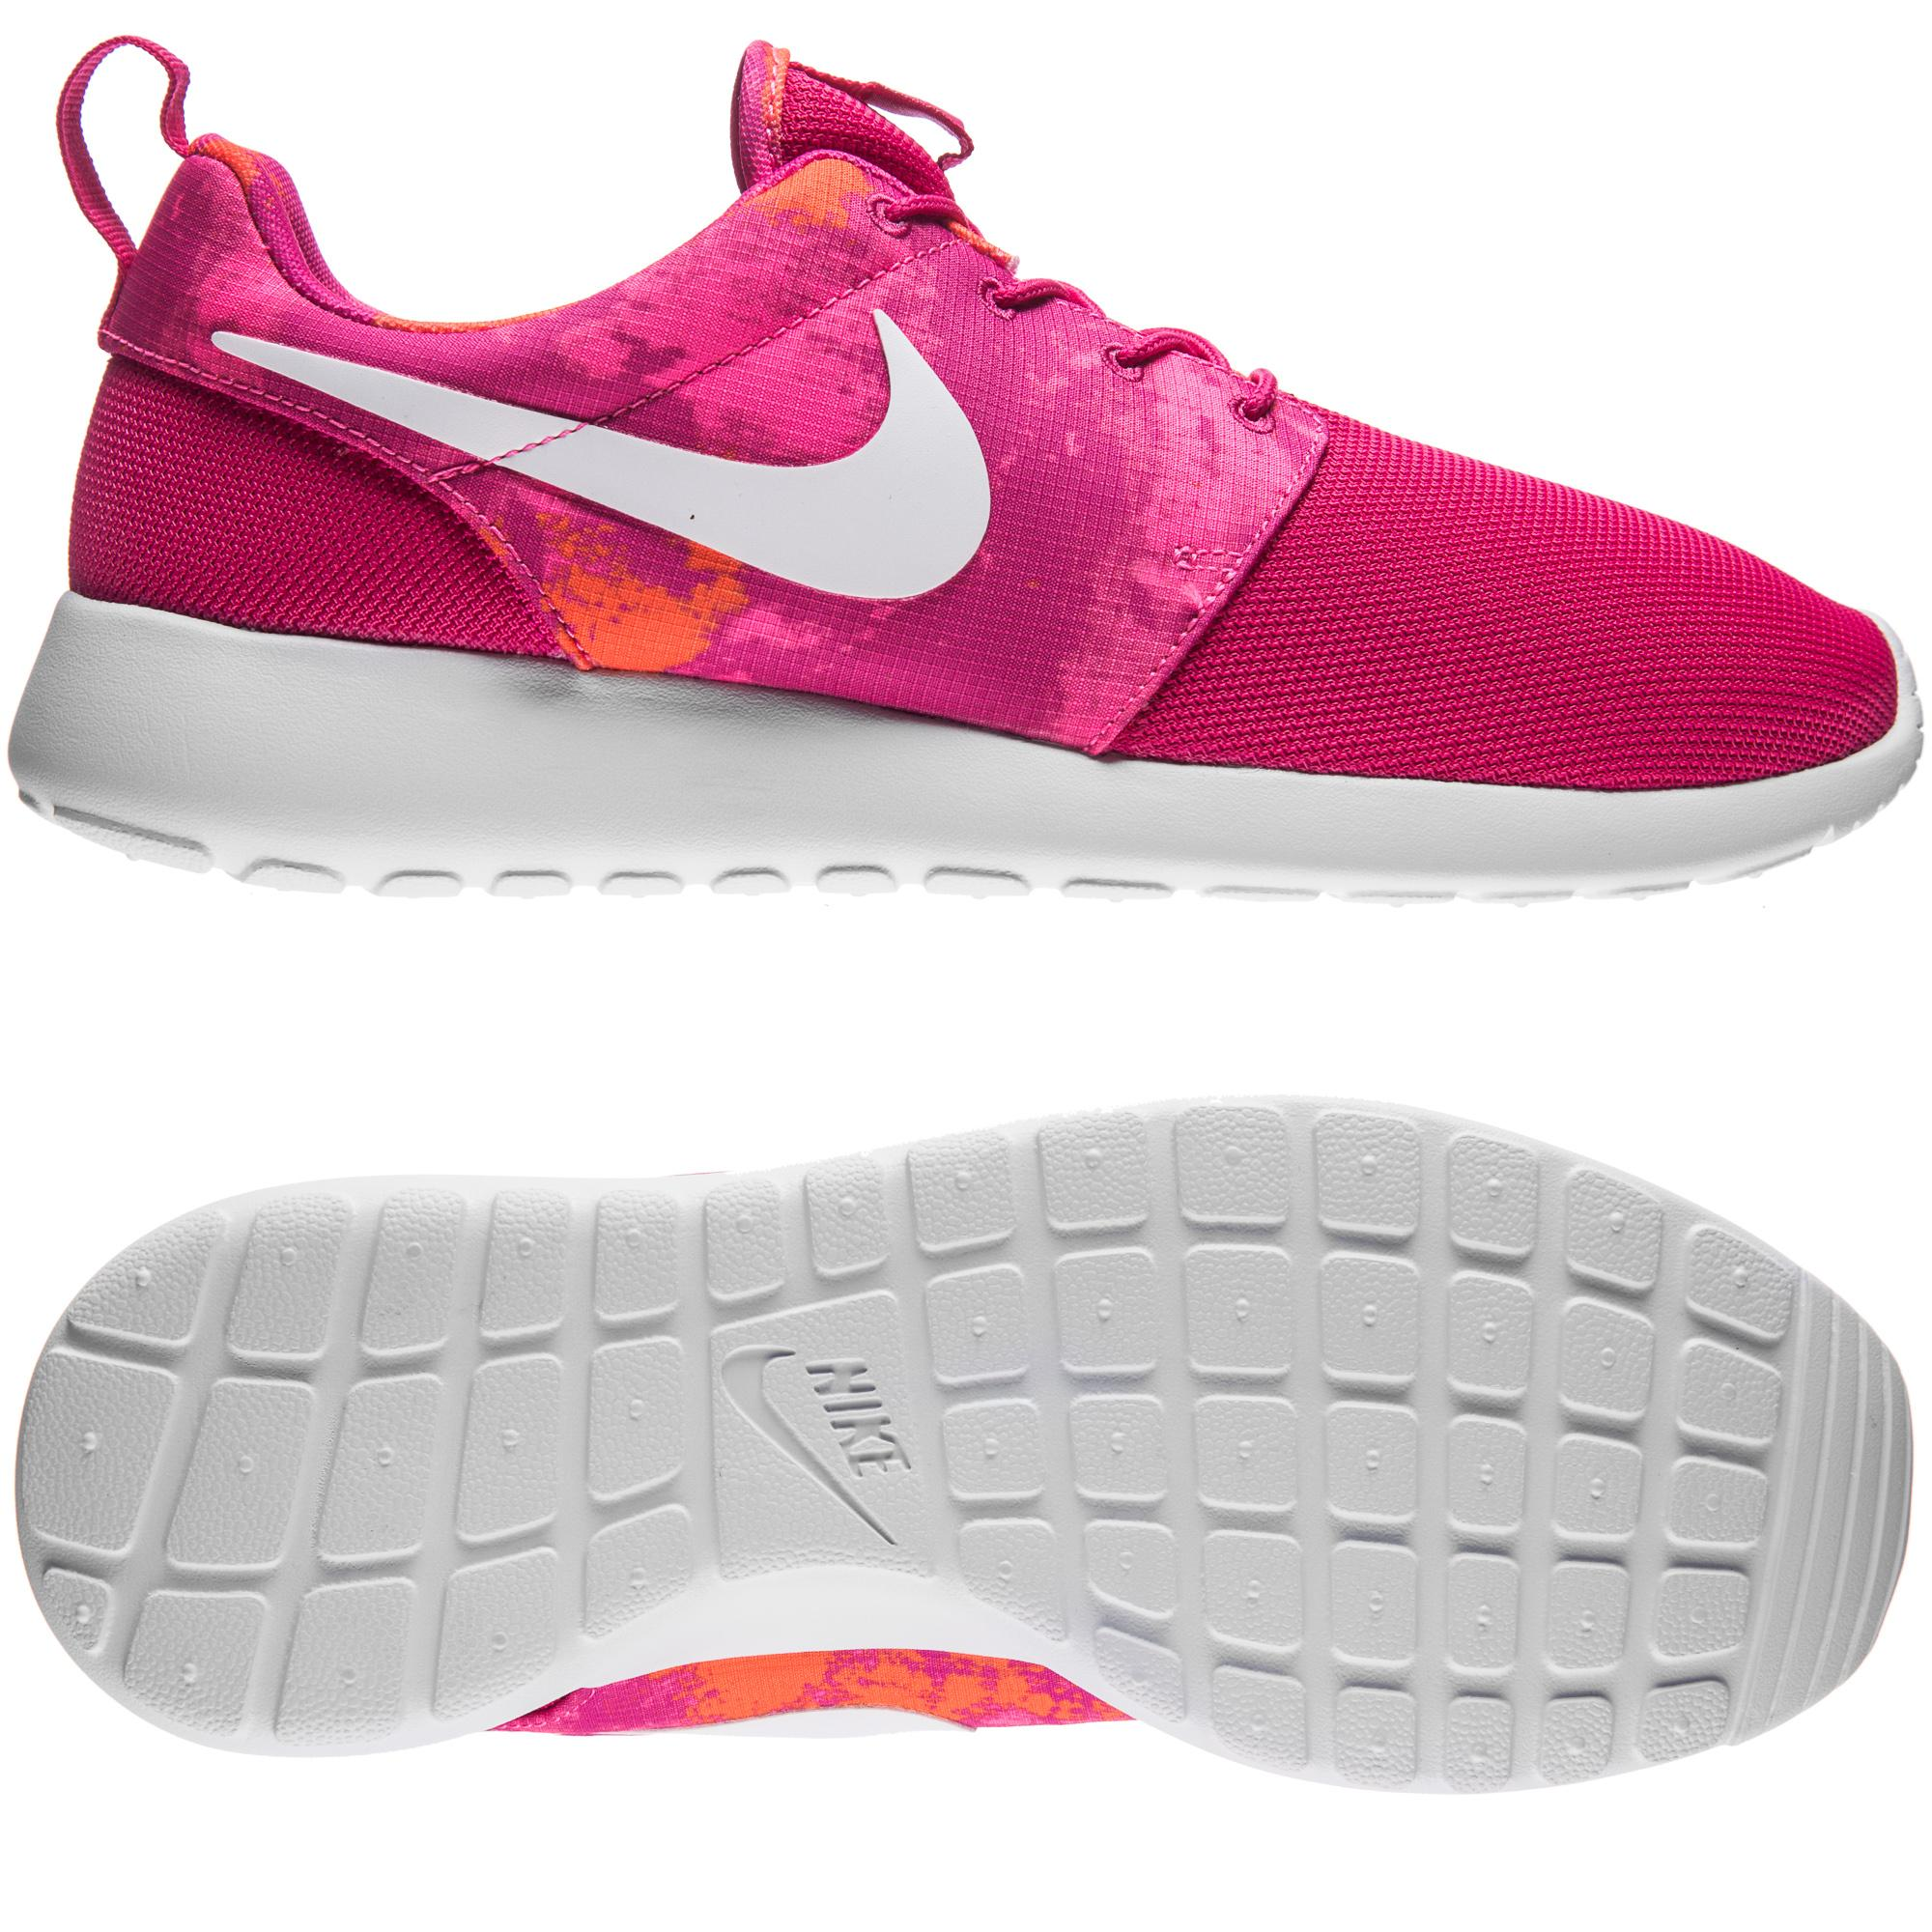 Nike Roshe One Print Rosa/Vit/Orange Dam